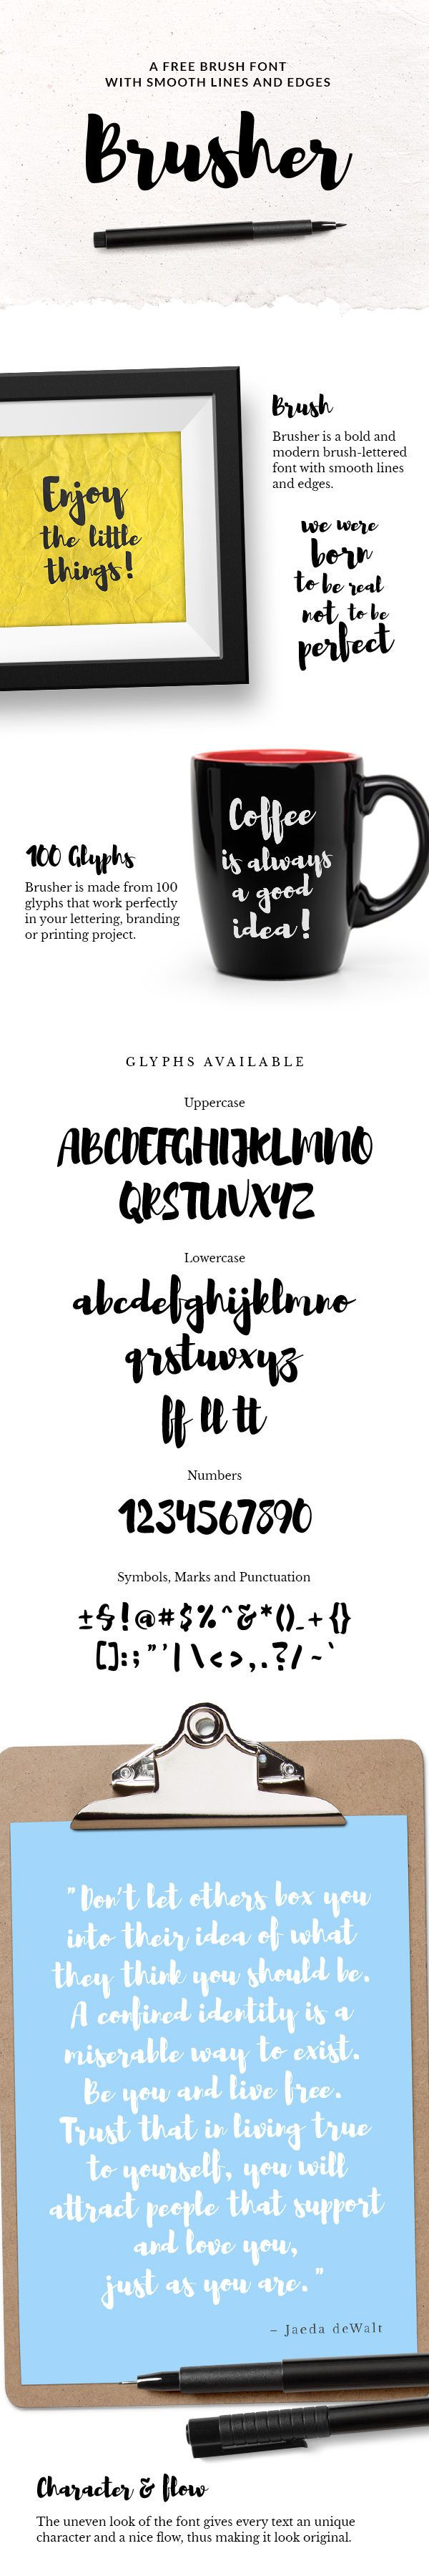 Brusher includes 100 glyphs crafted with precise strokes and smooth lines that will give your text a naturally hand drawn look